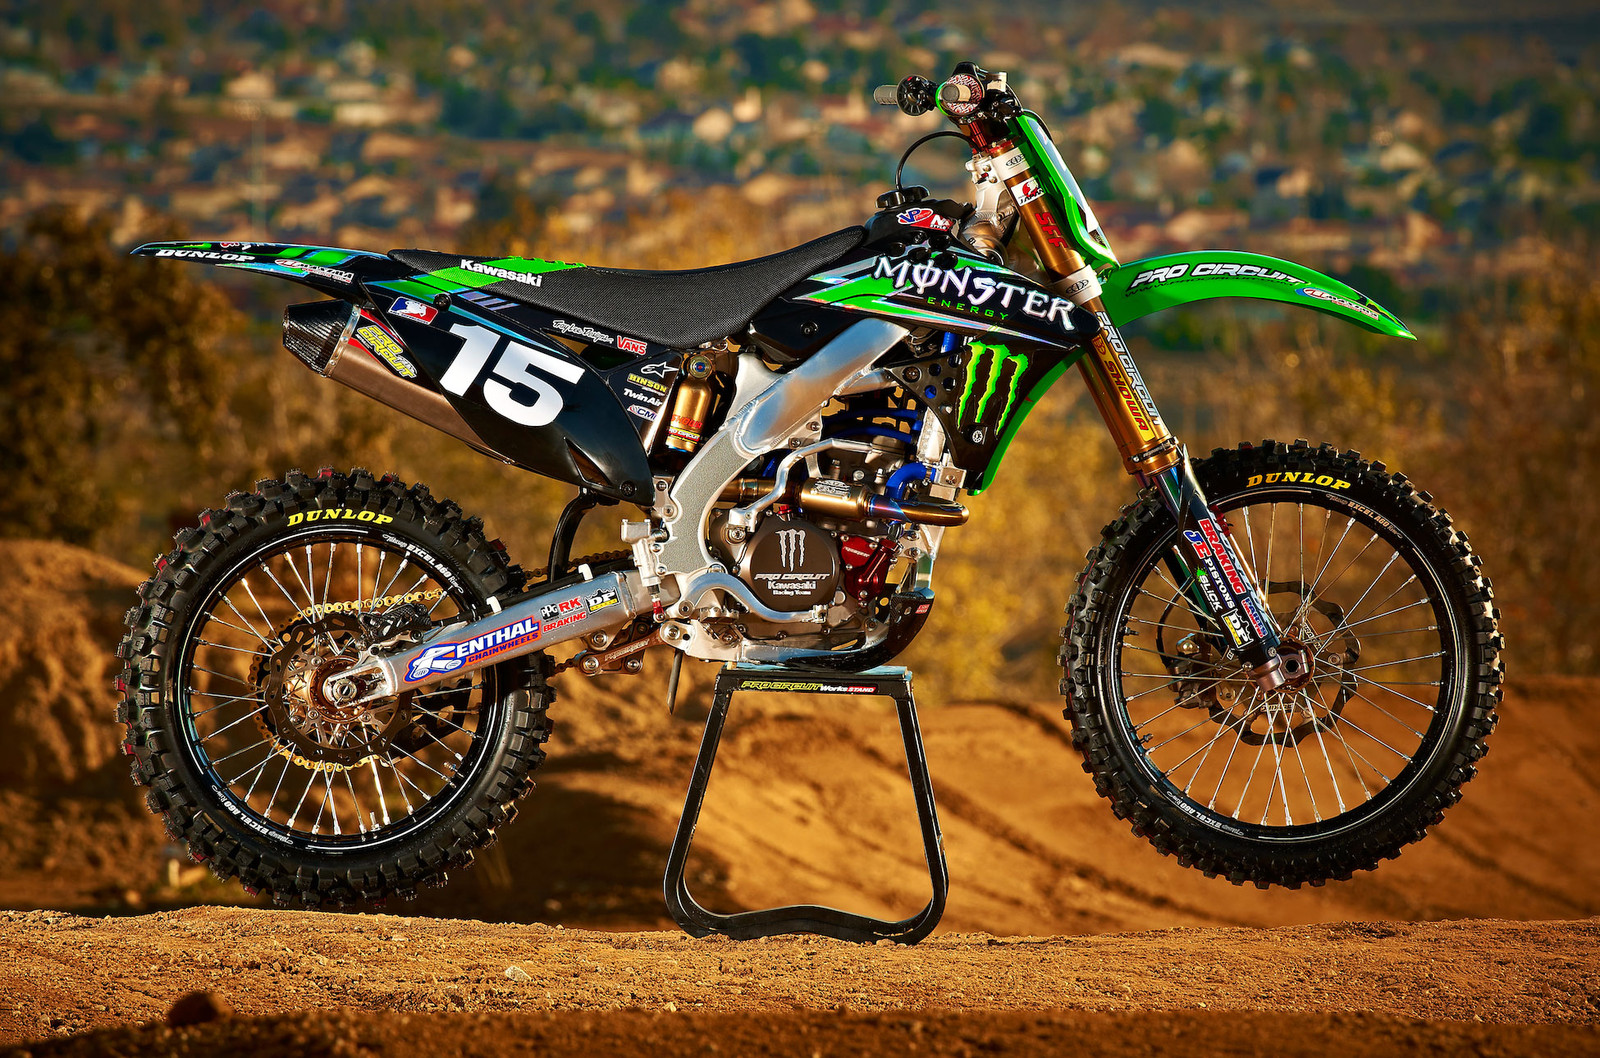 Official 2012 Monster Energy/Pro Circuit/Kawasaki Race Team Graphics - Moto-Related - Motocross ...